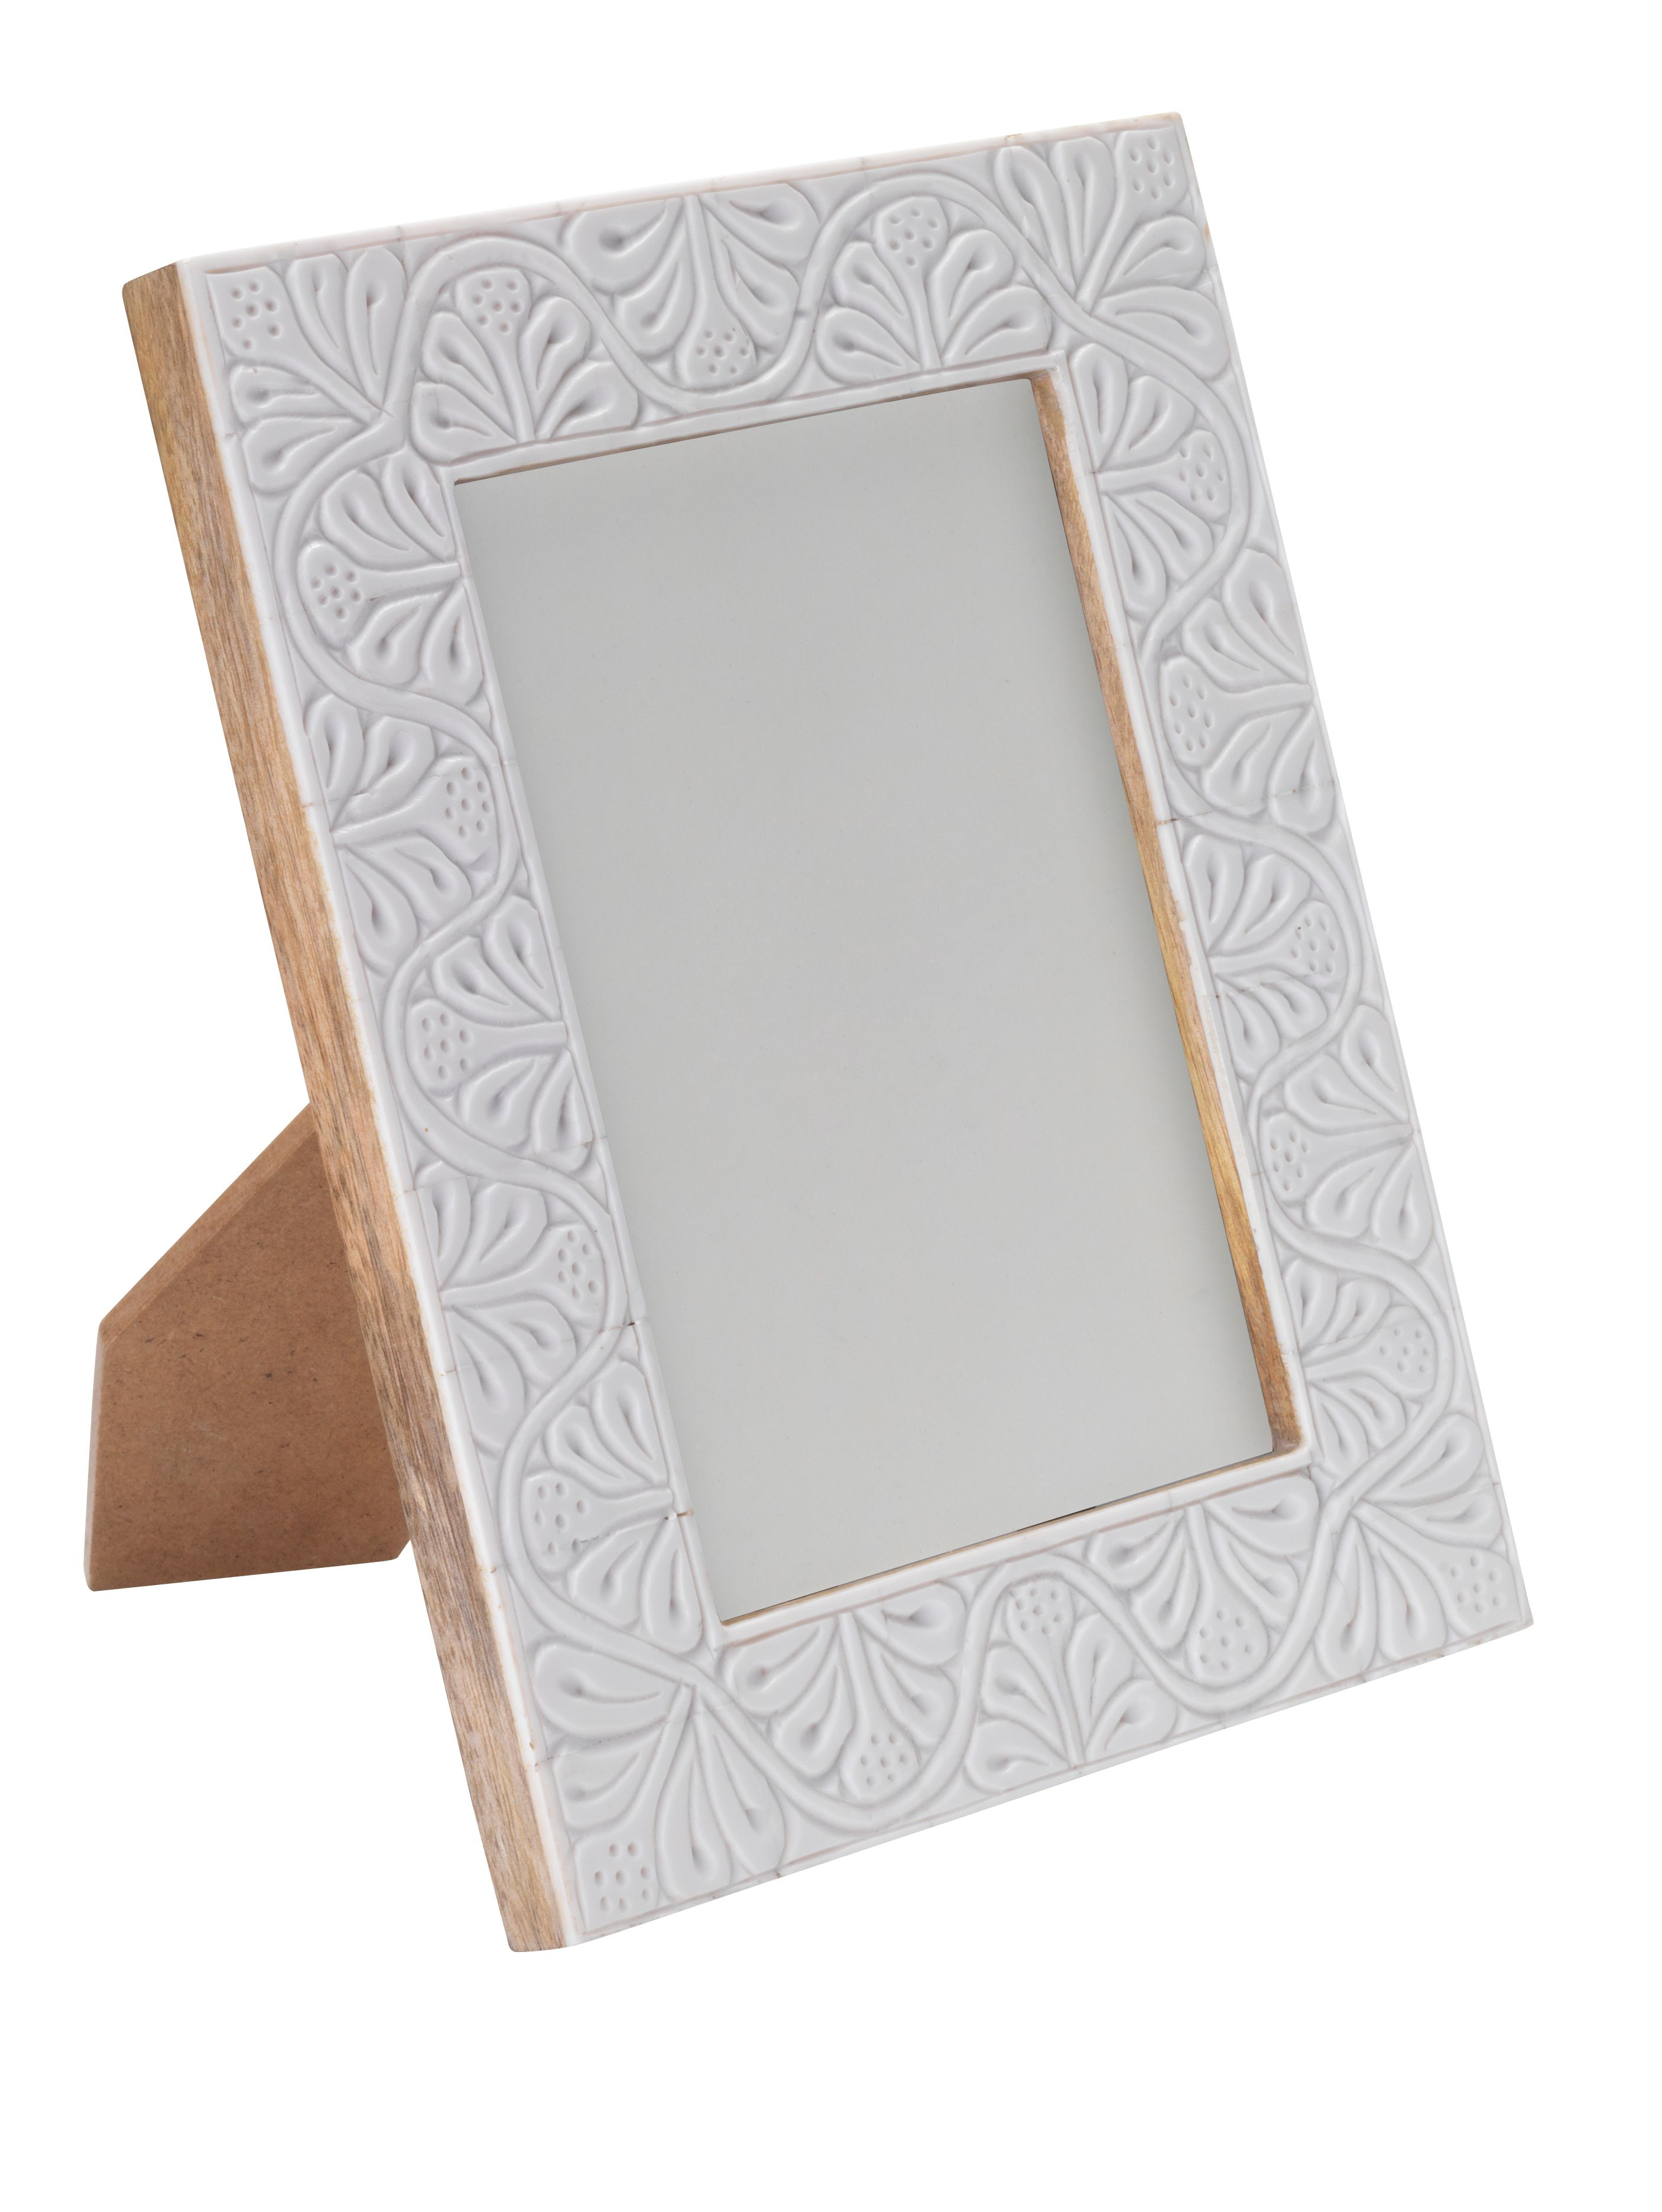 White embossed photo frame 5 x 7